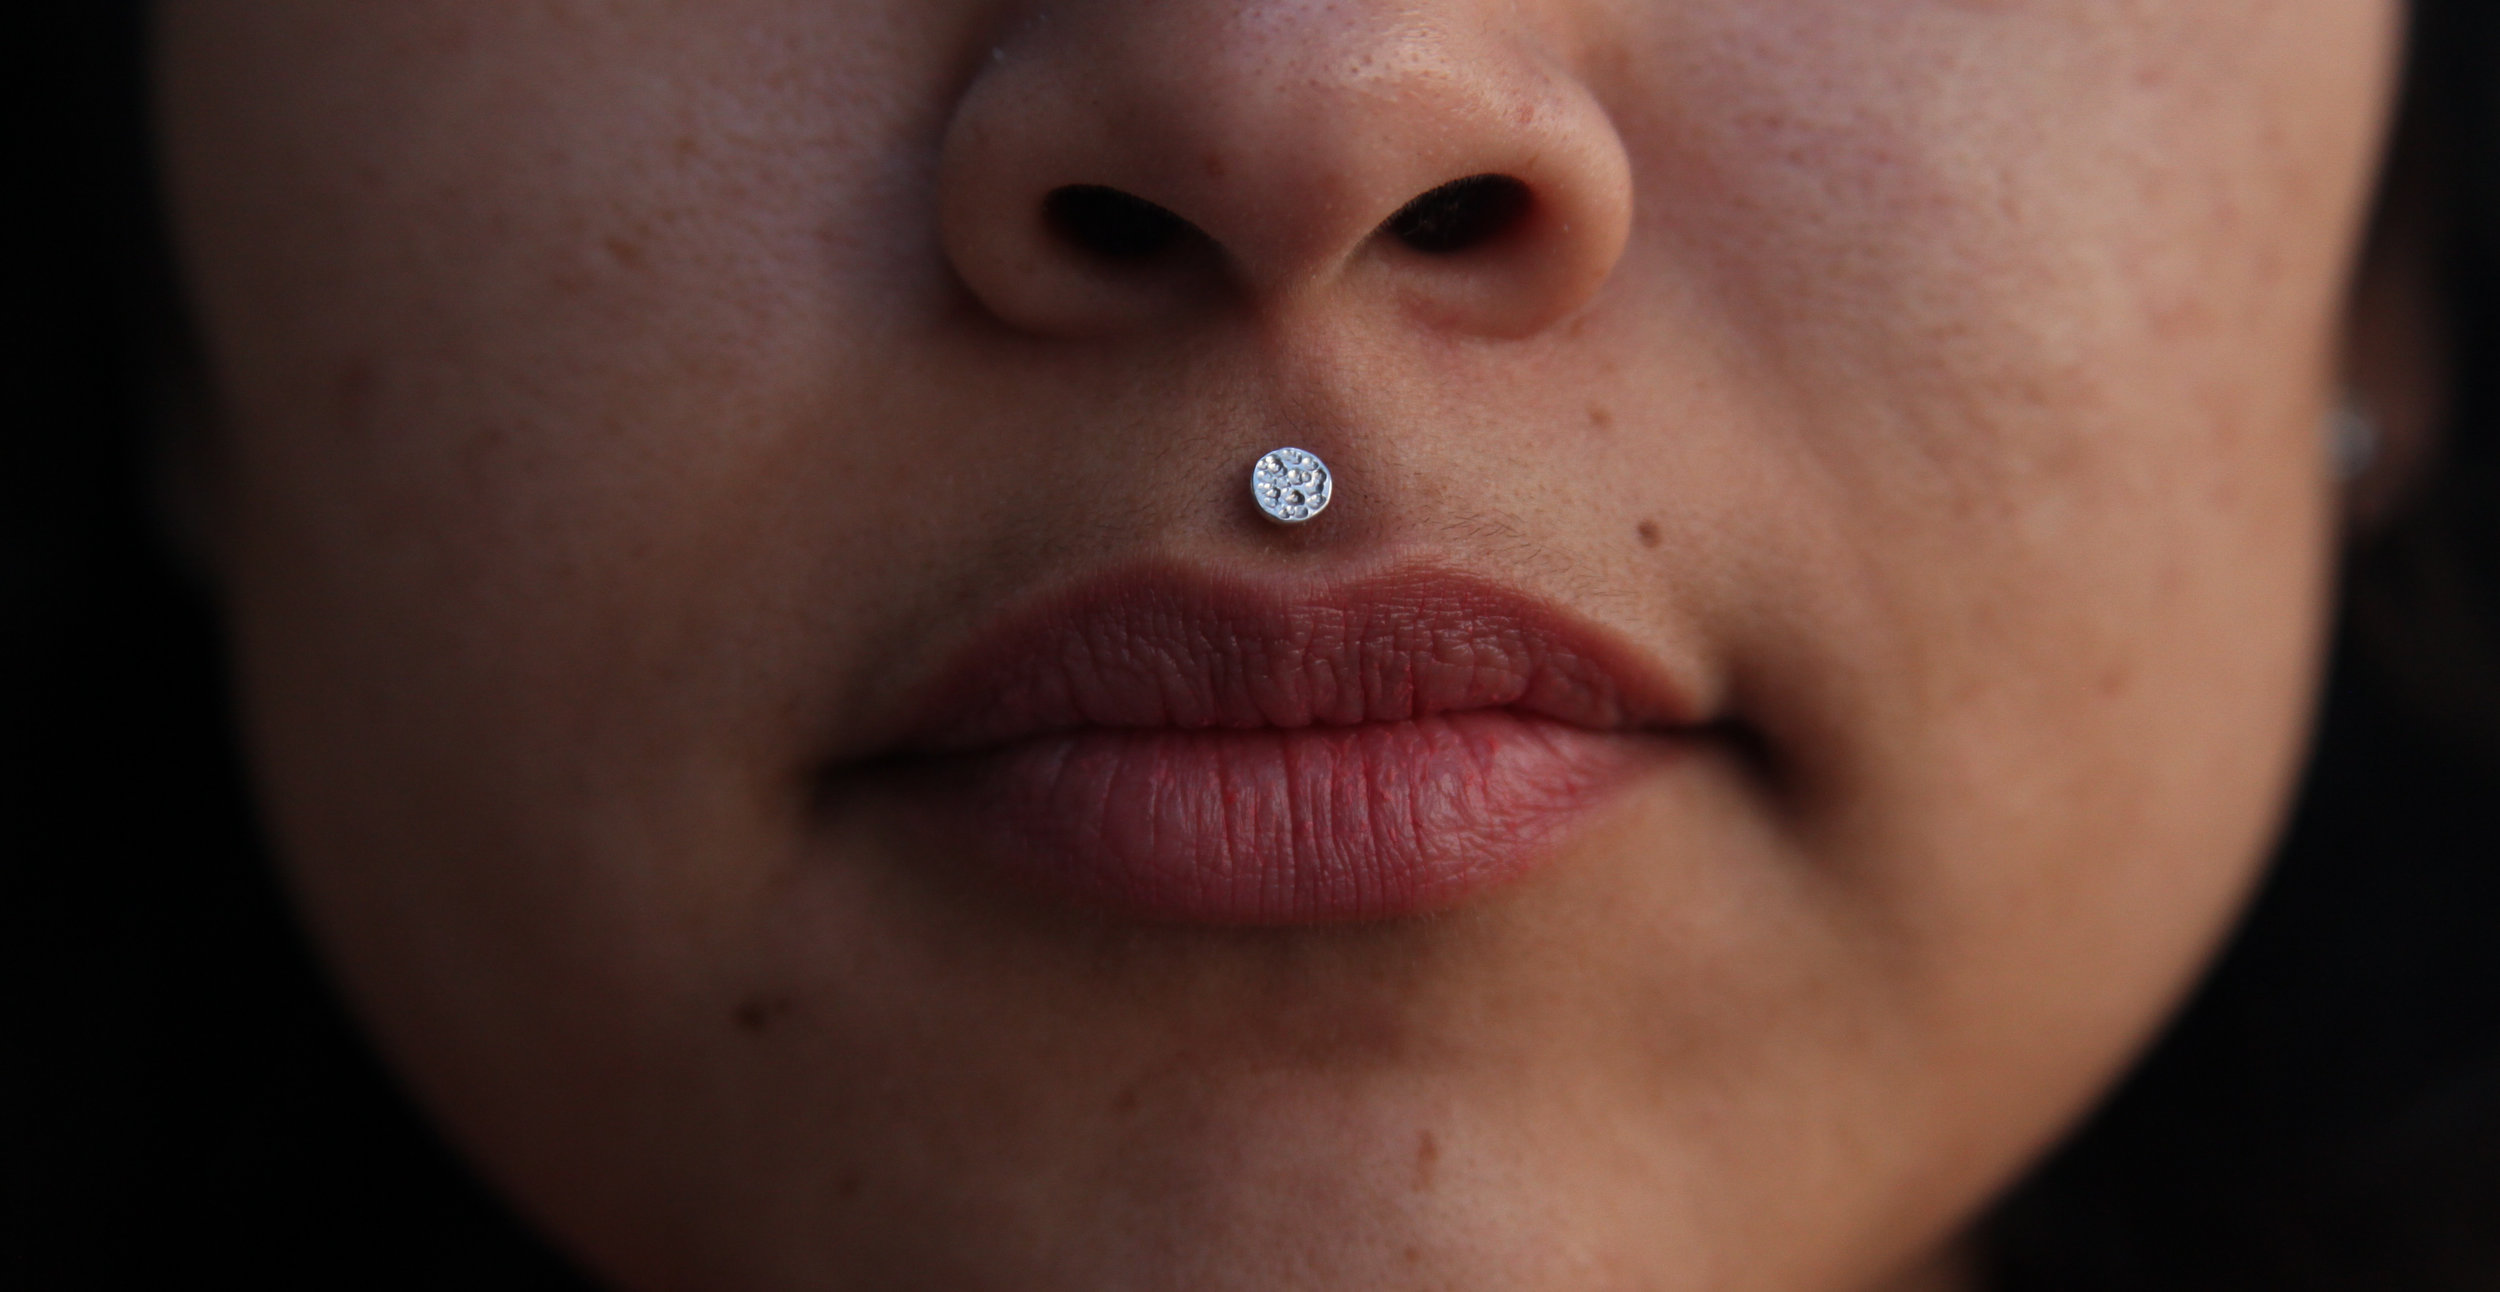 Lip Piercing - Lip piercings have a variety of placements around the lip tissue. This includes directly above the Cupid's Bow (the philtrum, pictured left), traditional labret piercings, placed in the center under the lower lip, and any sort or paired placement (colloquially referred to as snakebites, spiderbites, etc.). These piercings see a significant amount of swelling and need a longer piece of jewelry at the beginning, but also need downsizing relatively early on in the healing process.